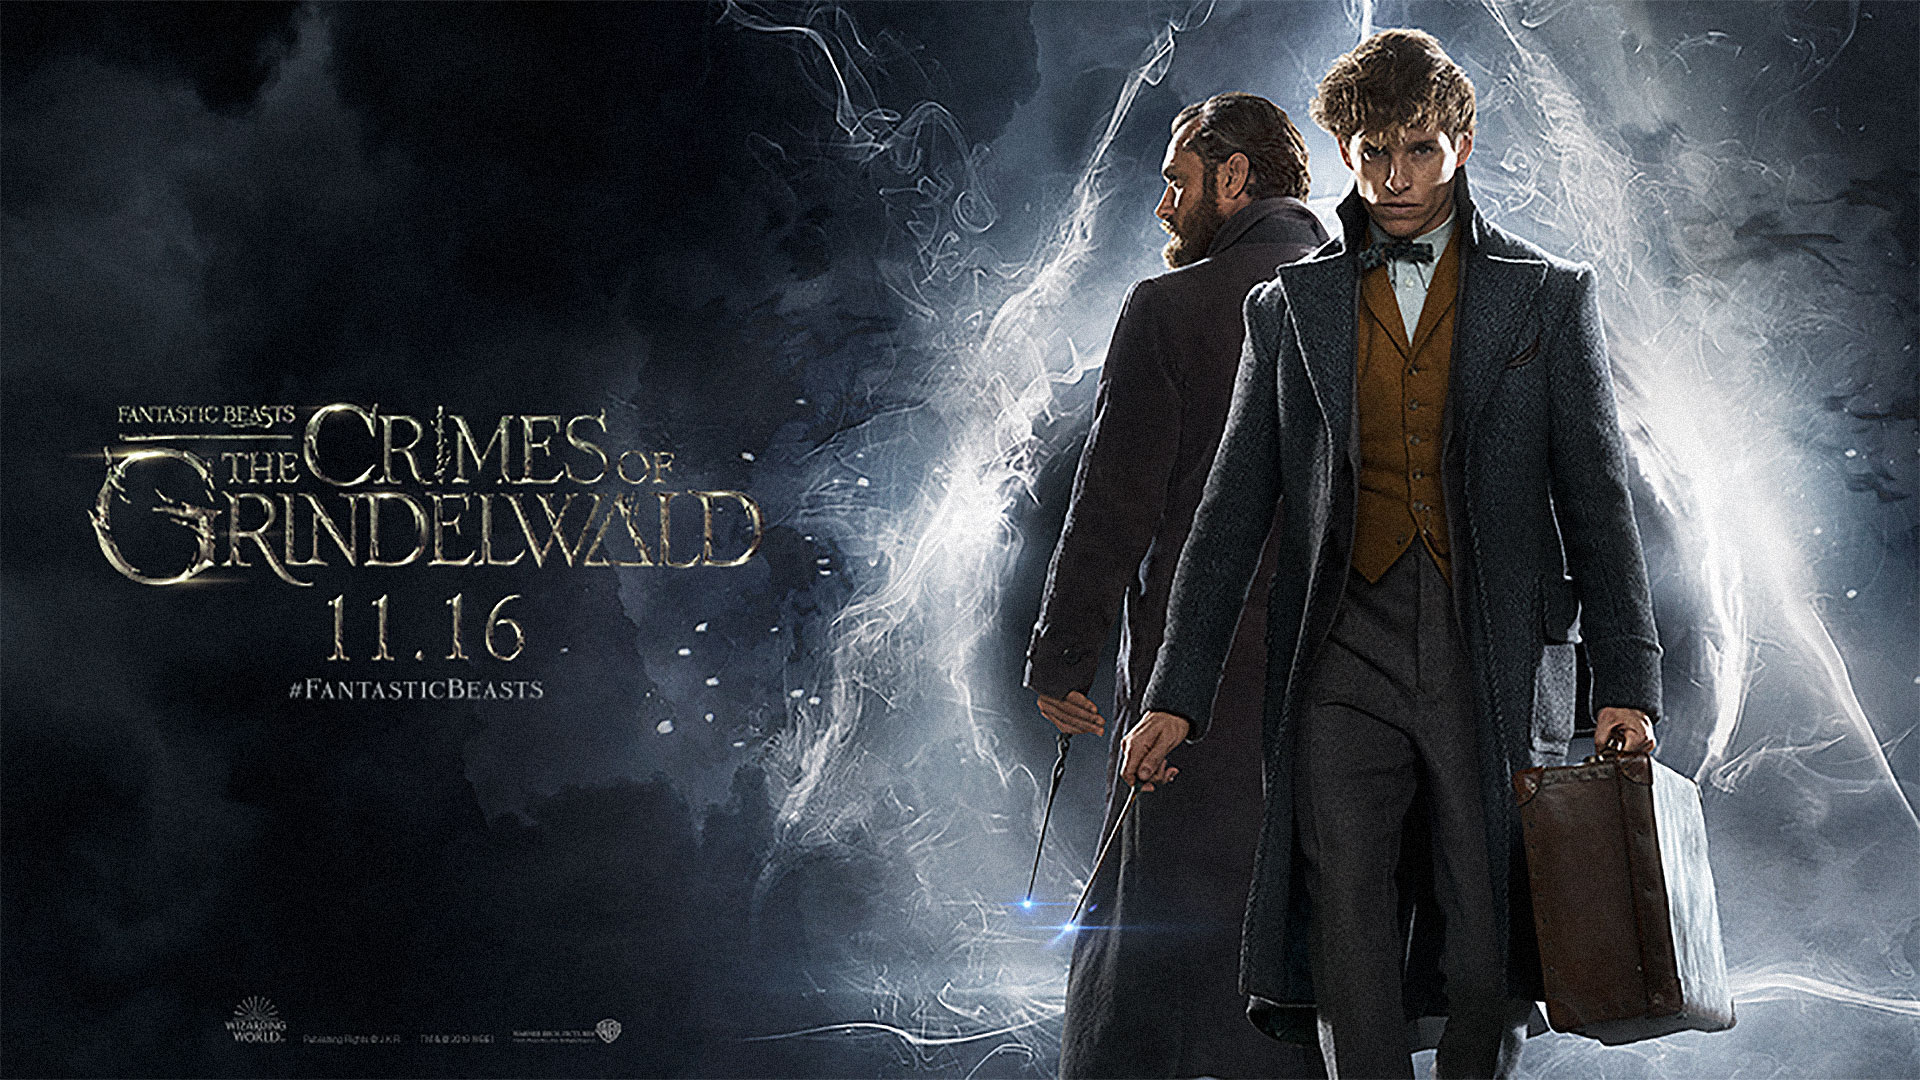 'Fantastic Beasts: The Crimes of Grindelwald' - landscape artwork